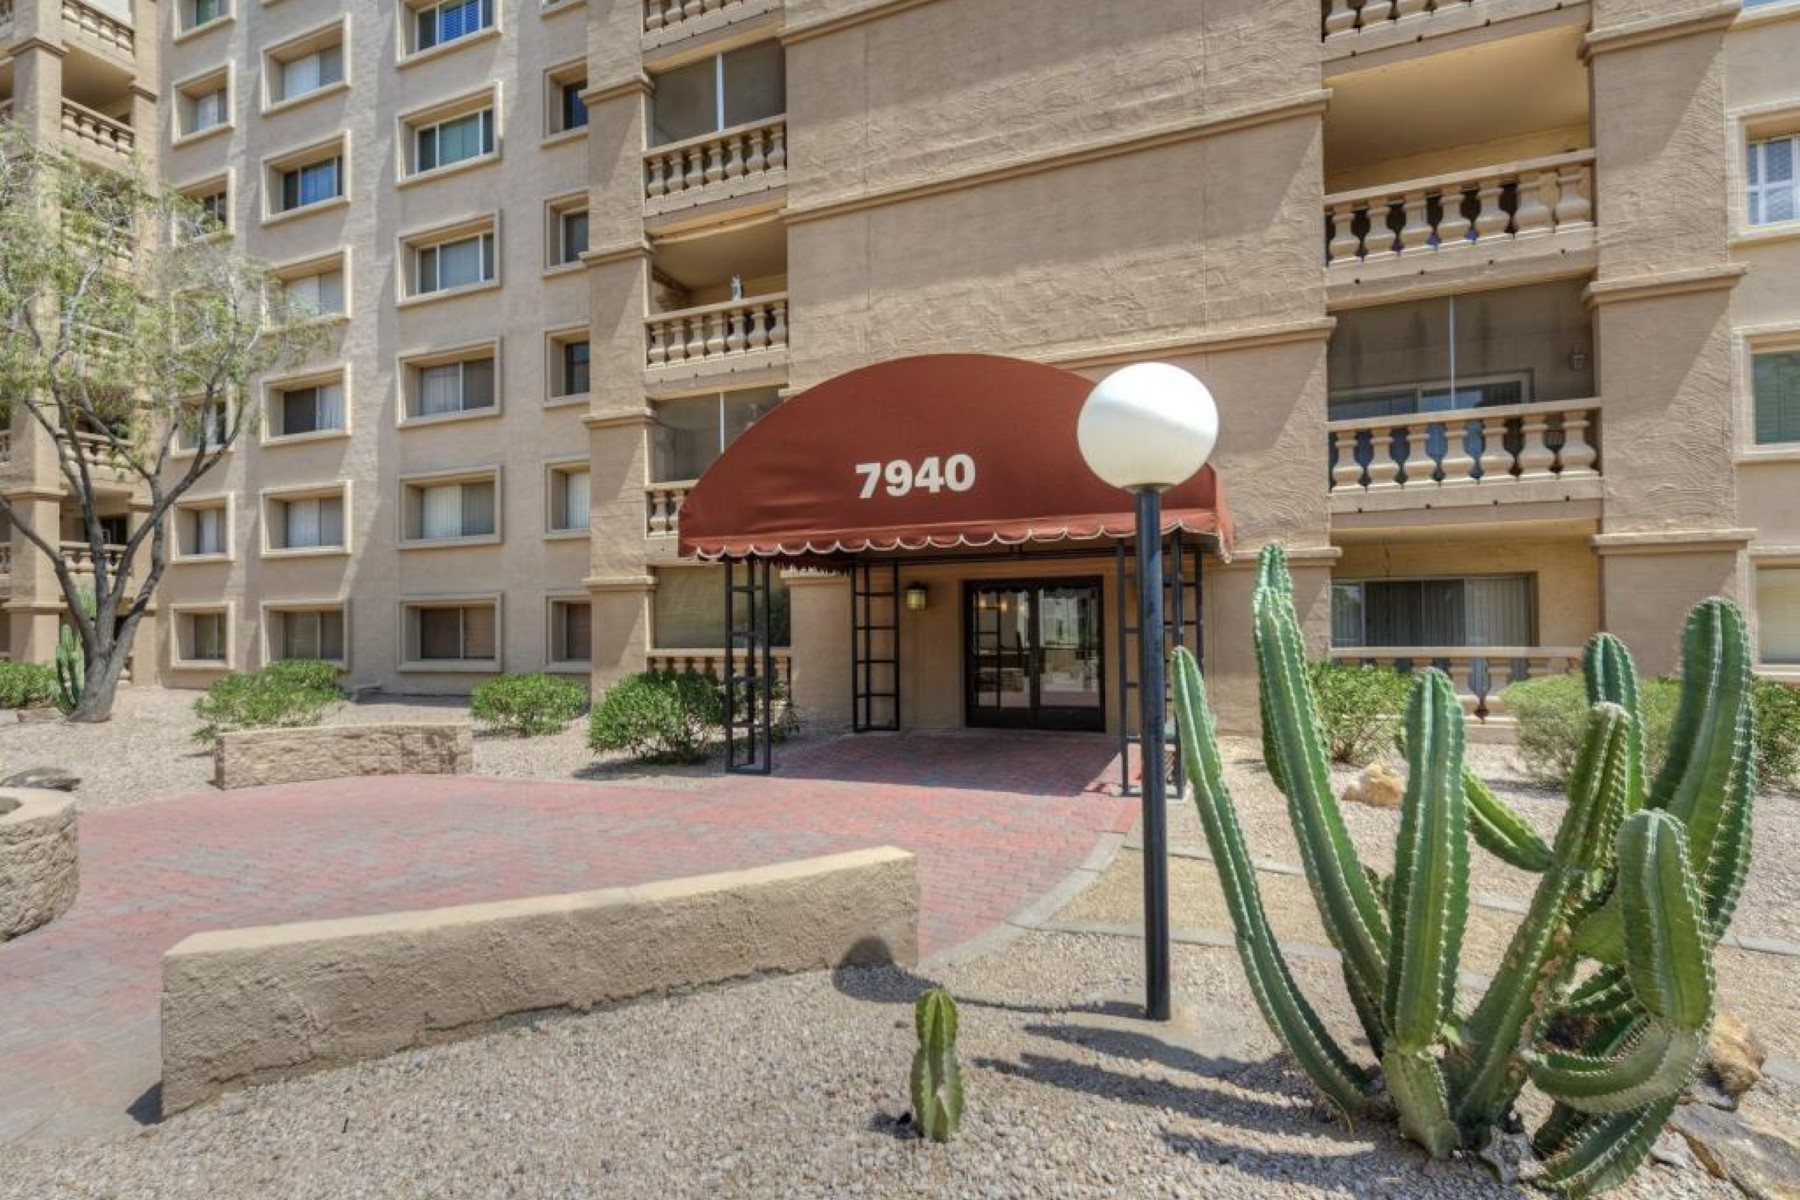 アパート のために 売買 アット A beautiful condo in Scottsdale Shadows with views of Camelback Mountain. 7940 E CAMELBACK RD 603 Scottsdale, アリゾナ 85251 アメリカ合衆国